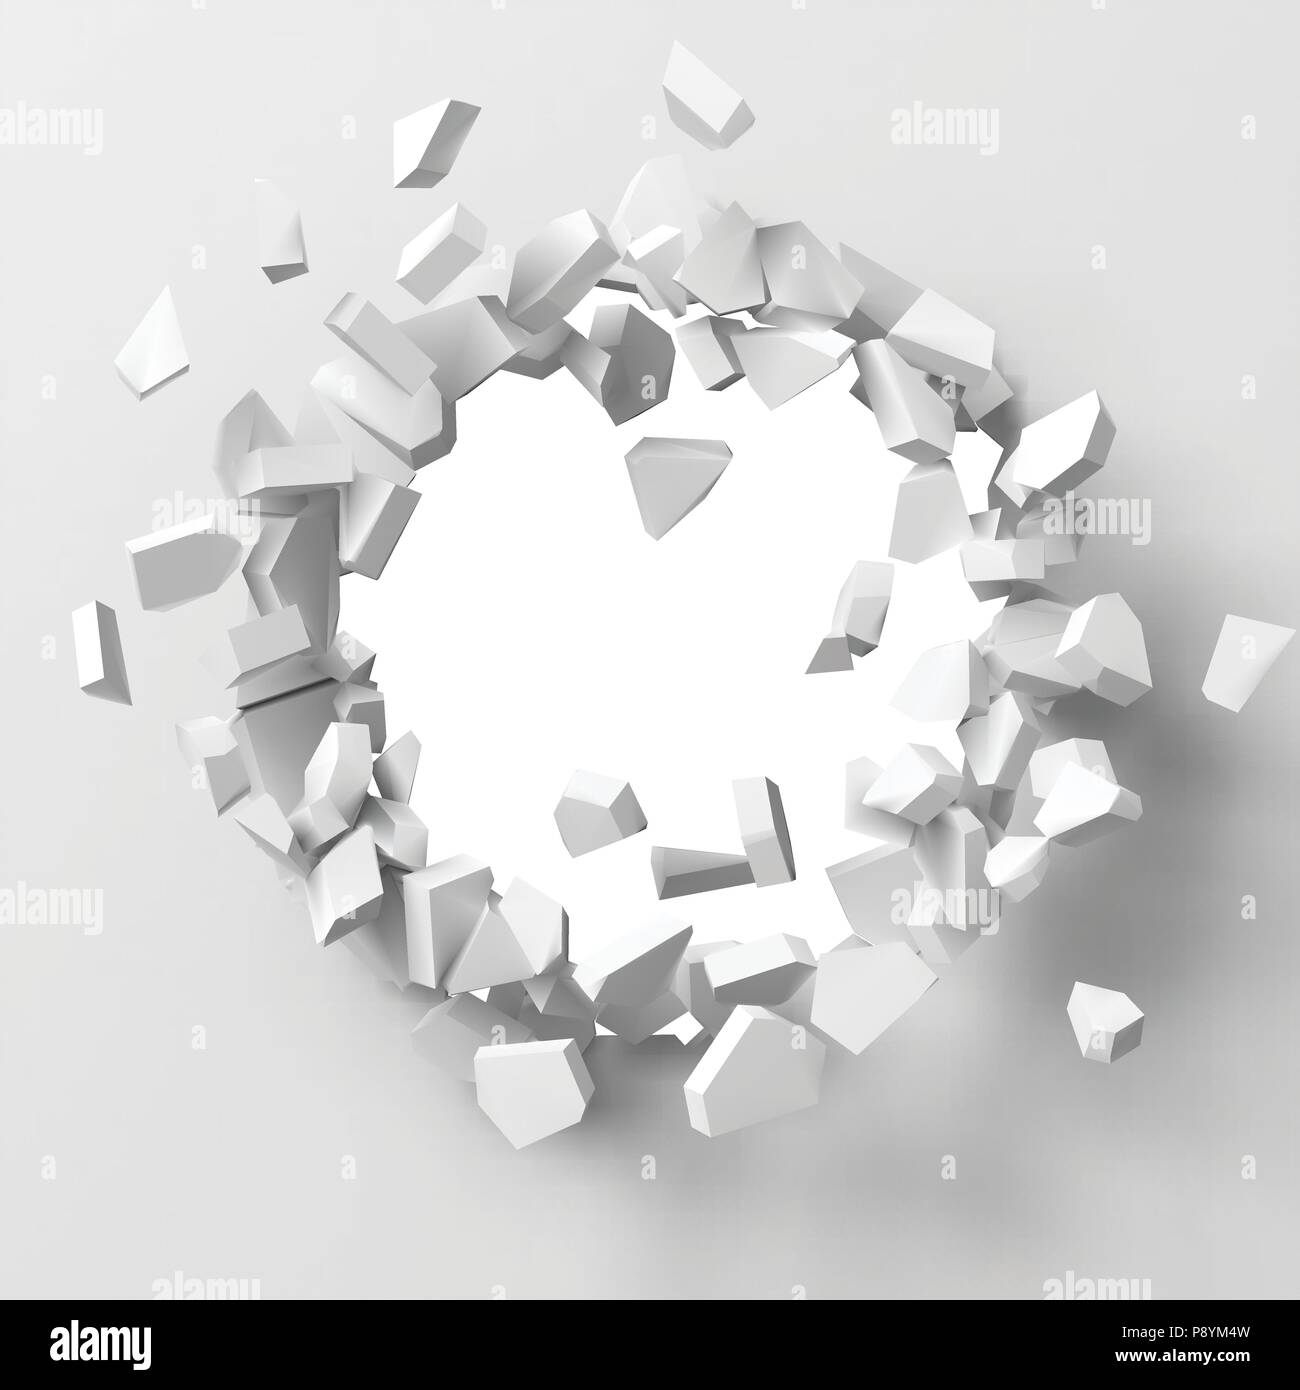 vector illustration of exploding wall with free area on center for any object or background Stock Vector